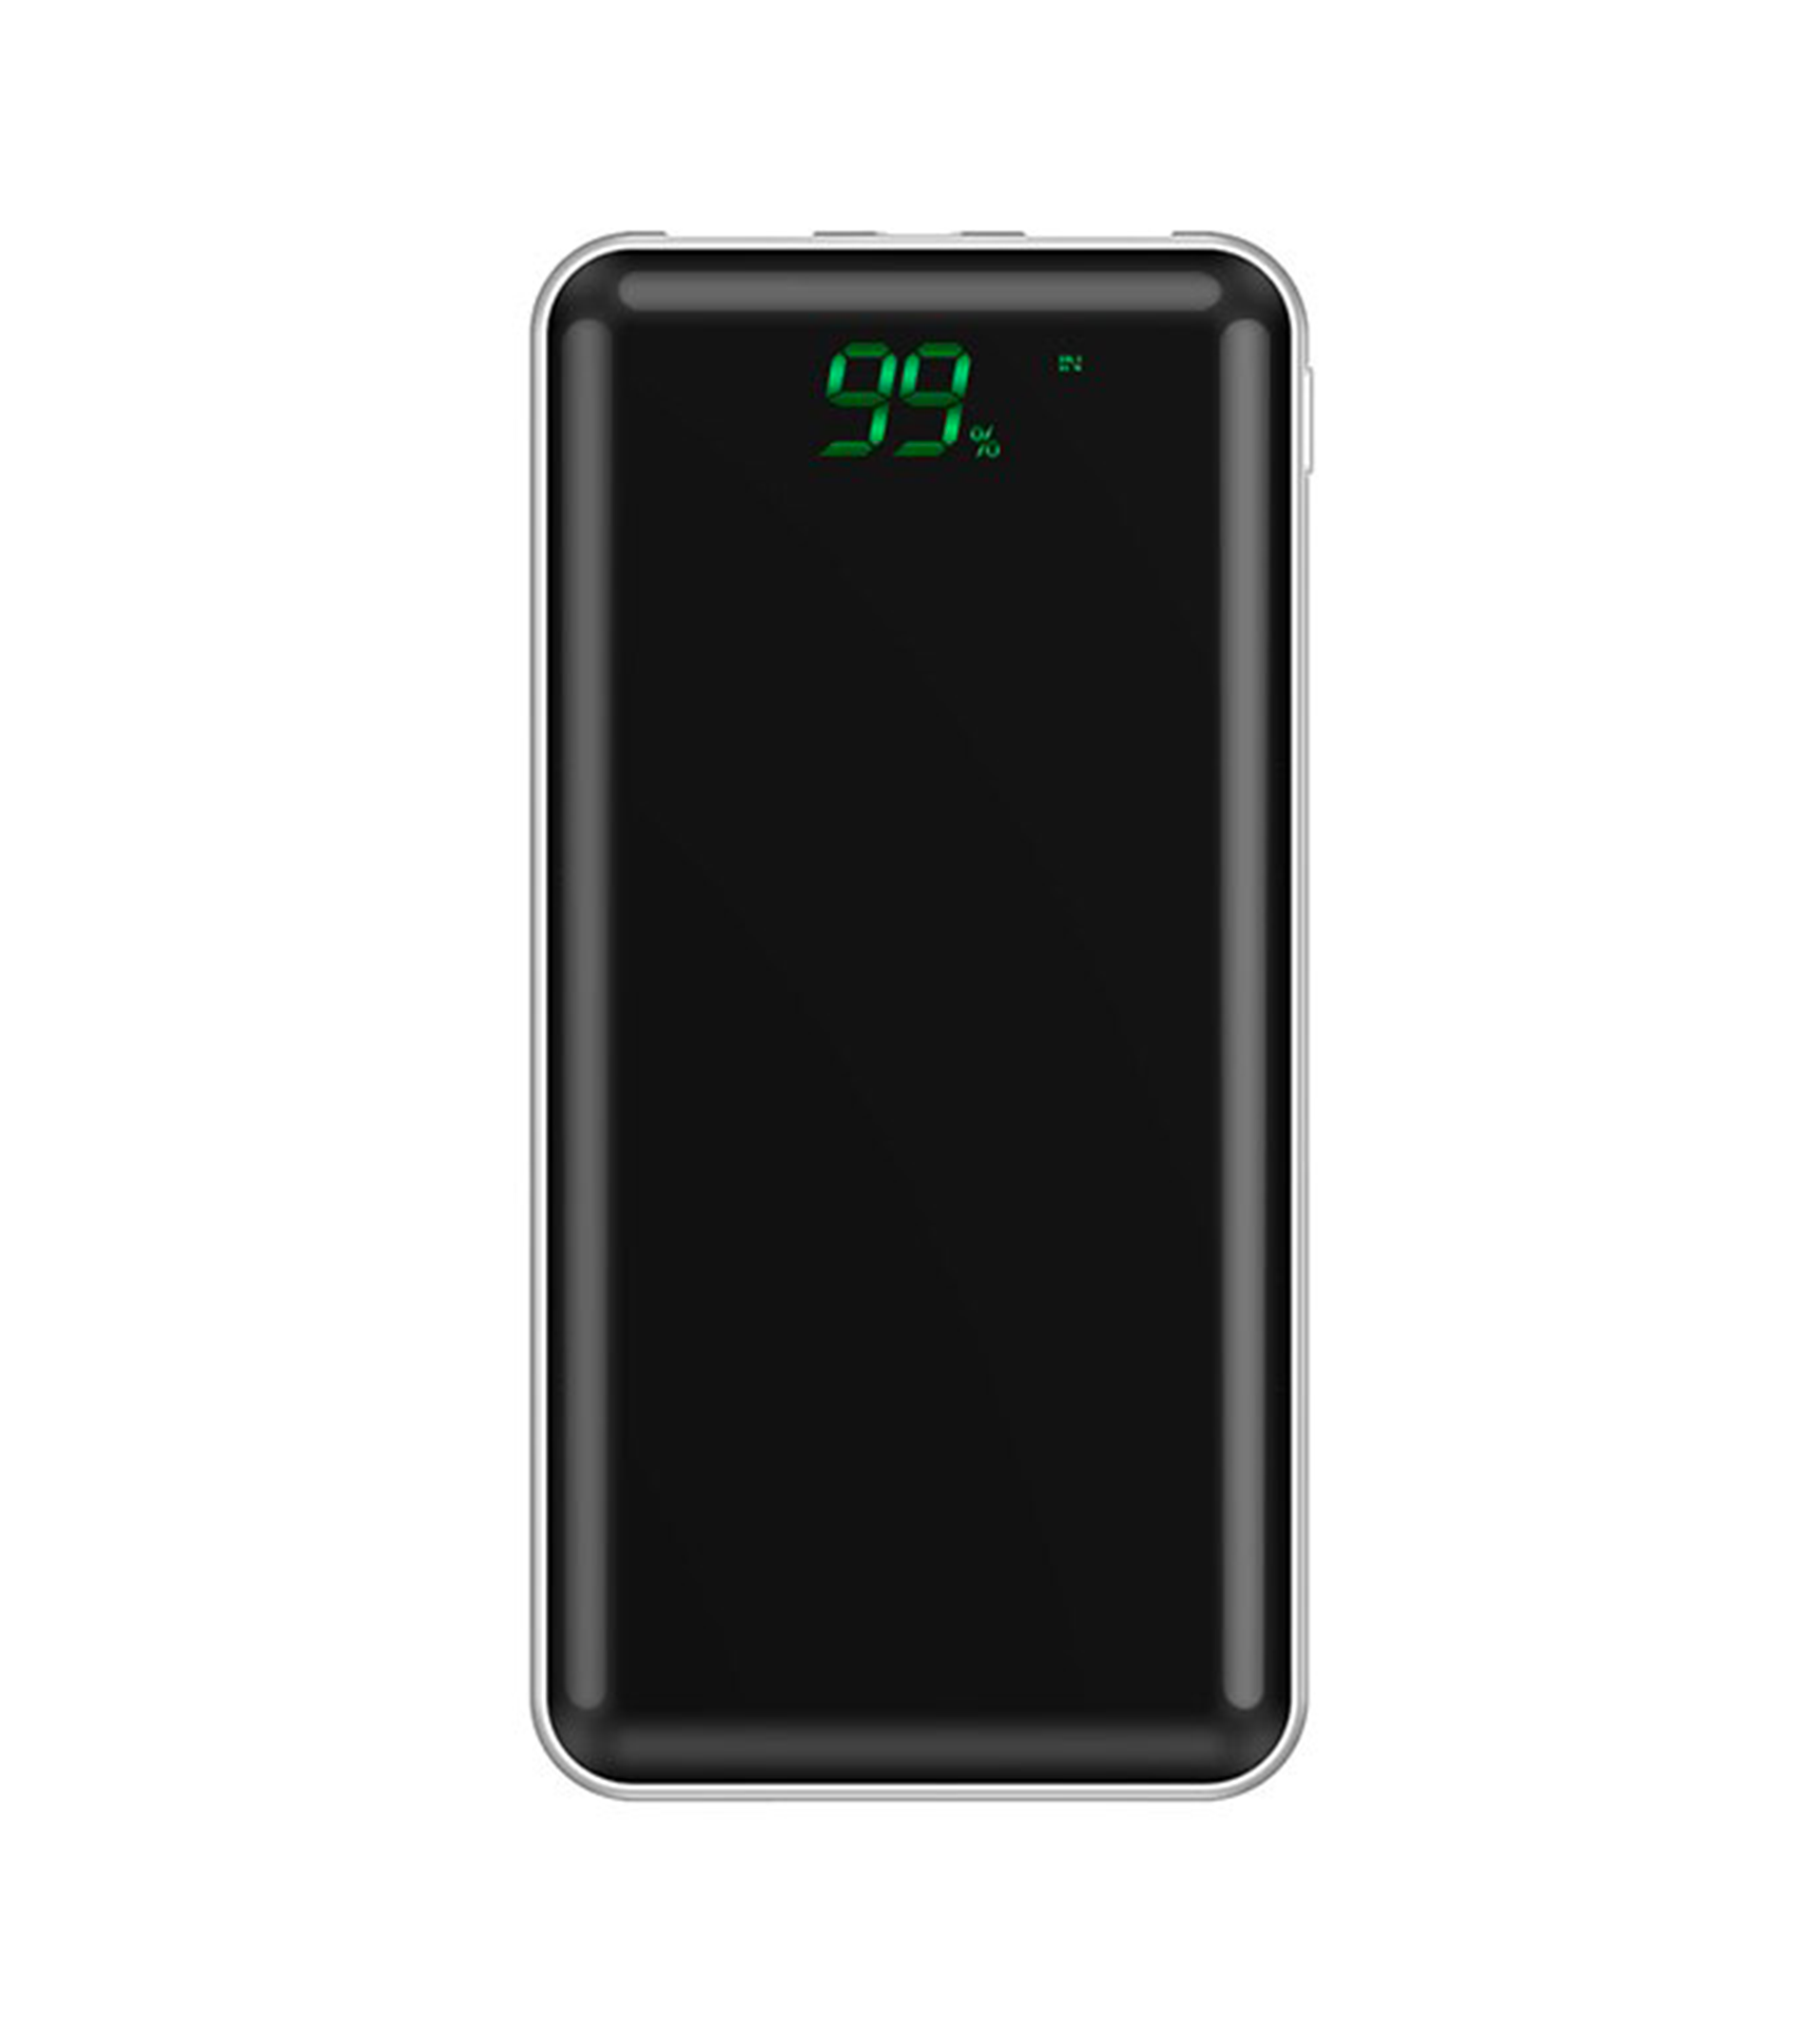 acumulator extern power bank lcd display 10000mah alb